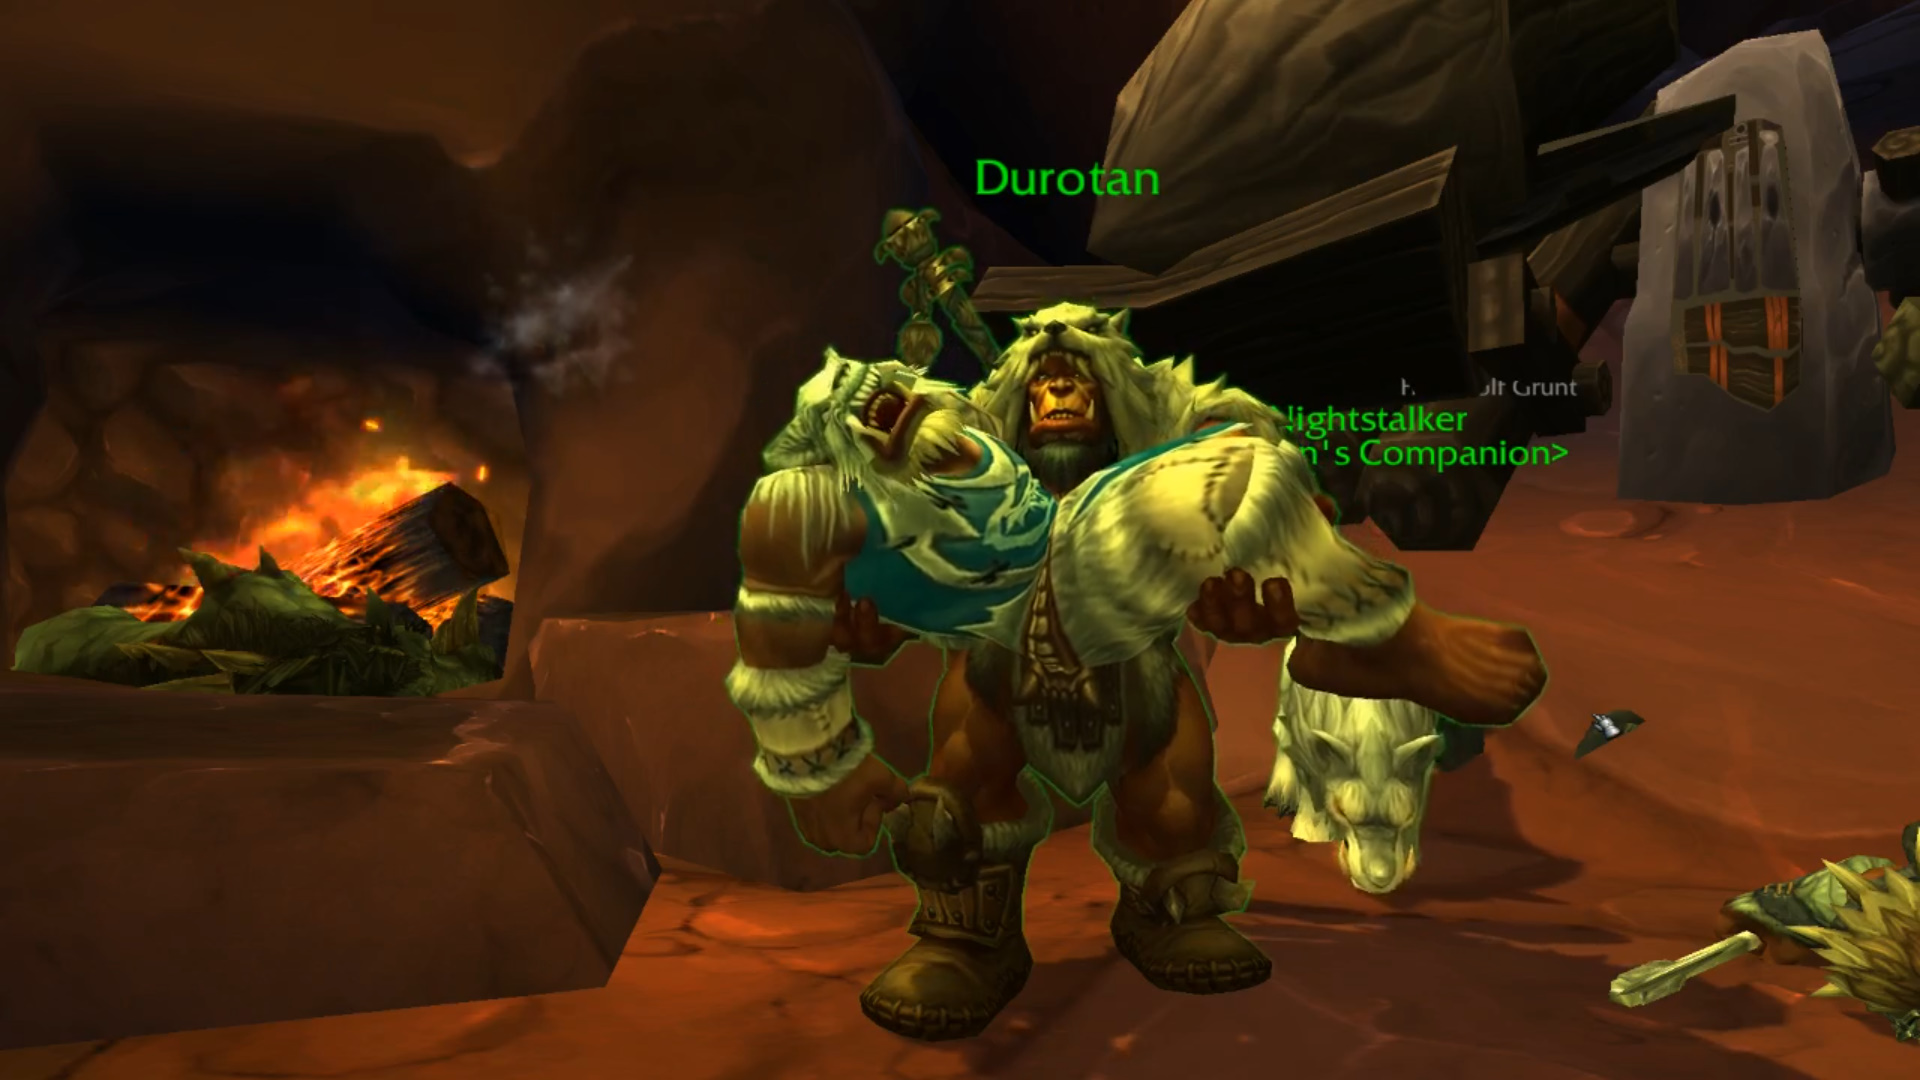 world of warcraft subscriptions have gone up by 600k since the last